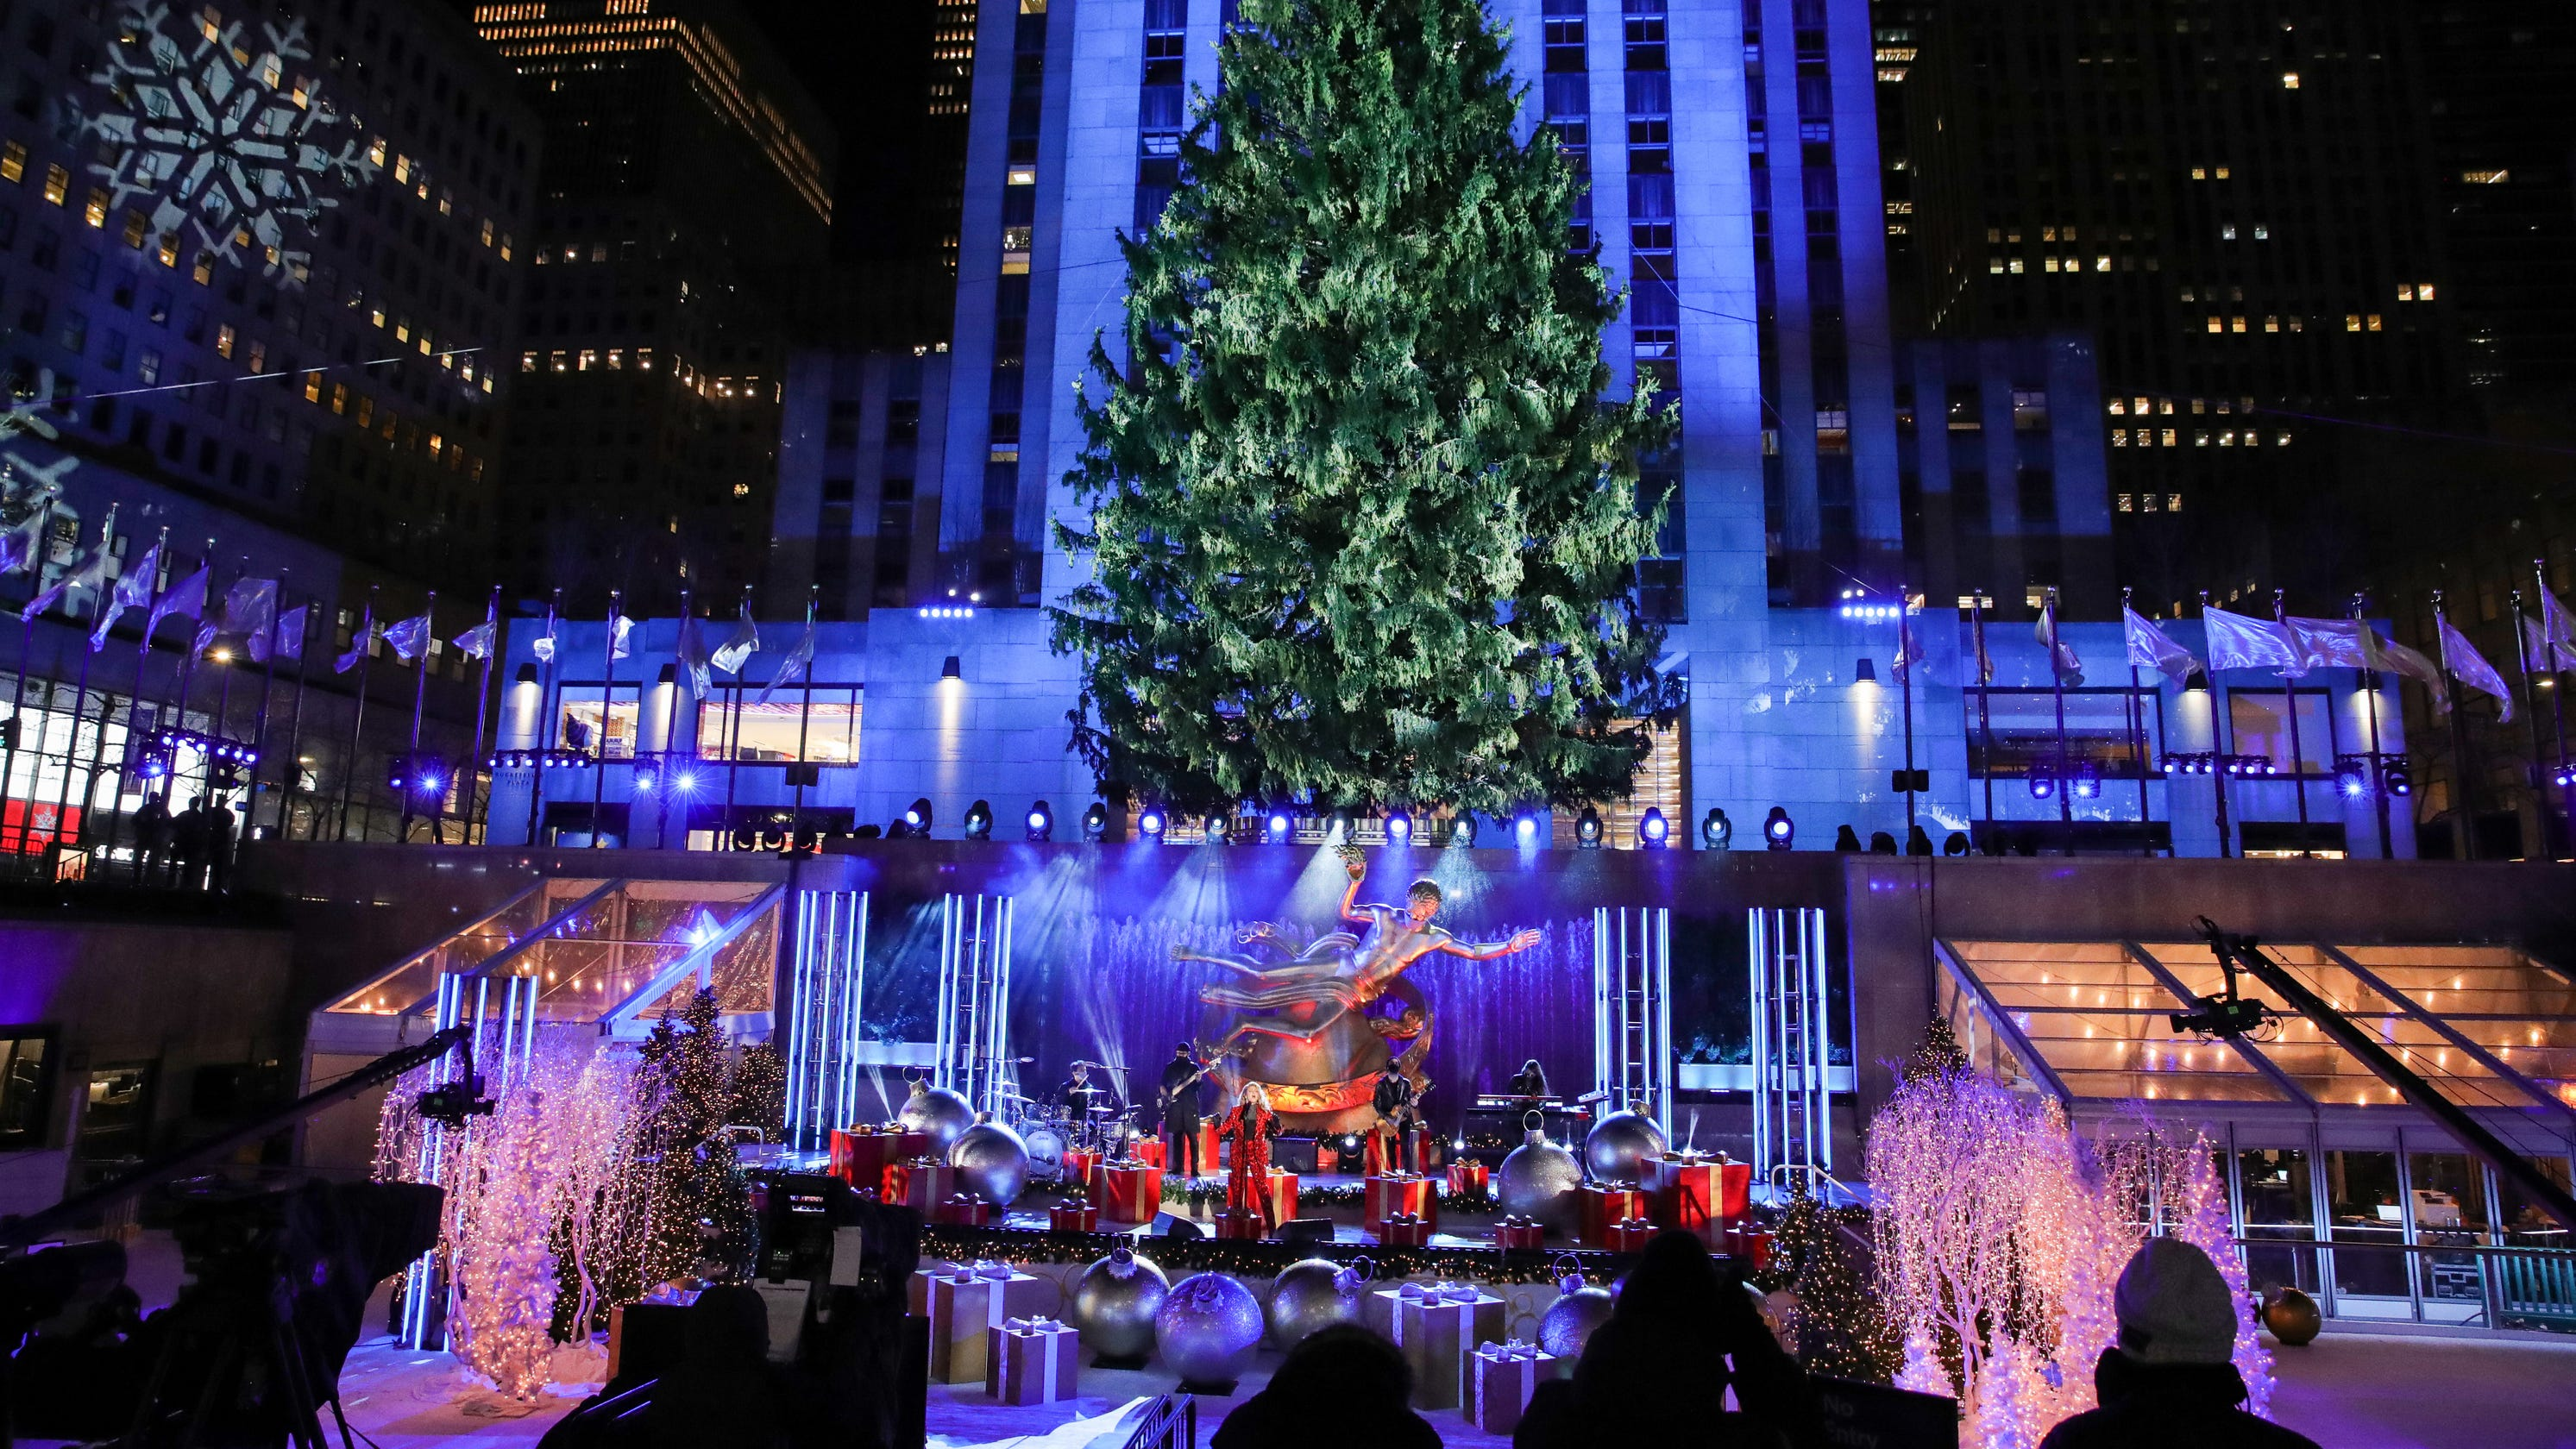 Rockefeller Center Christmas tree lighting: Dolly Parton, Kelly Clarkson and Jimmy Fallon sleigh it